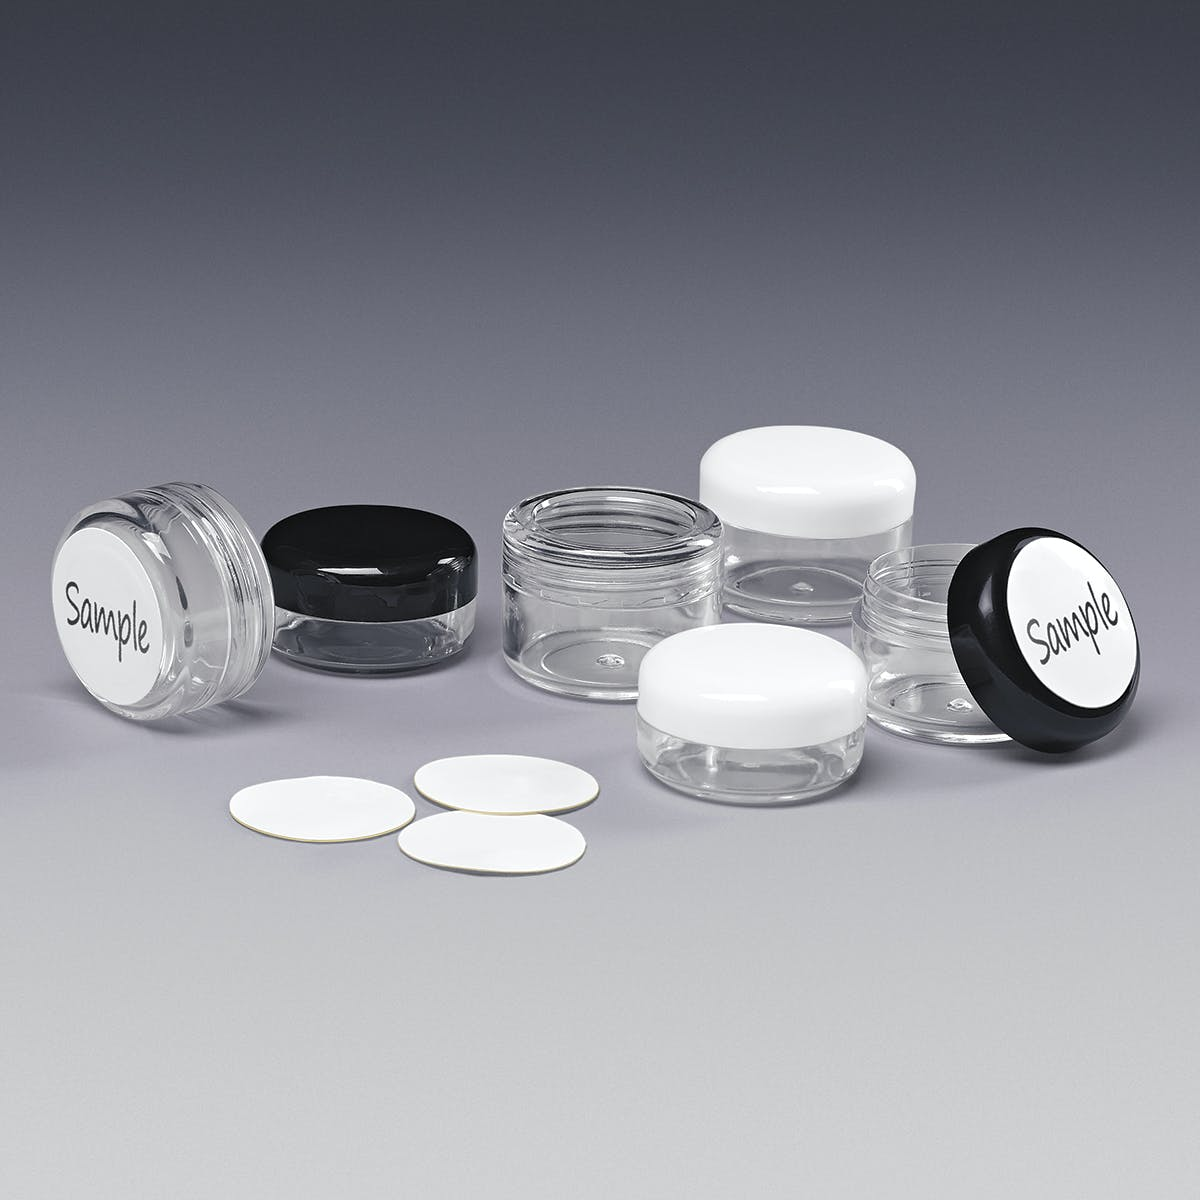 Jars with Writeable Labels - sold by Qosmedix